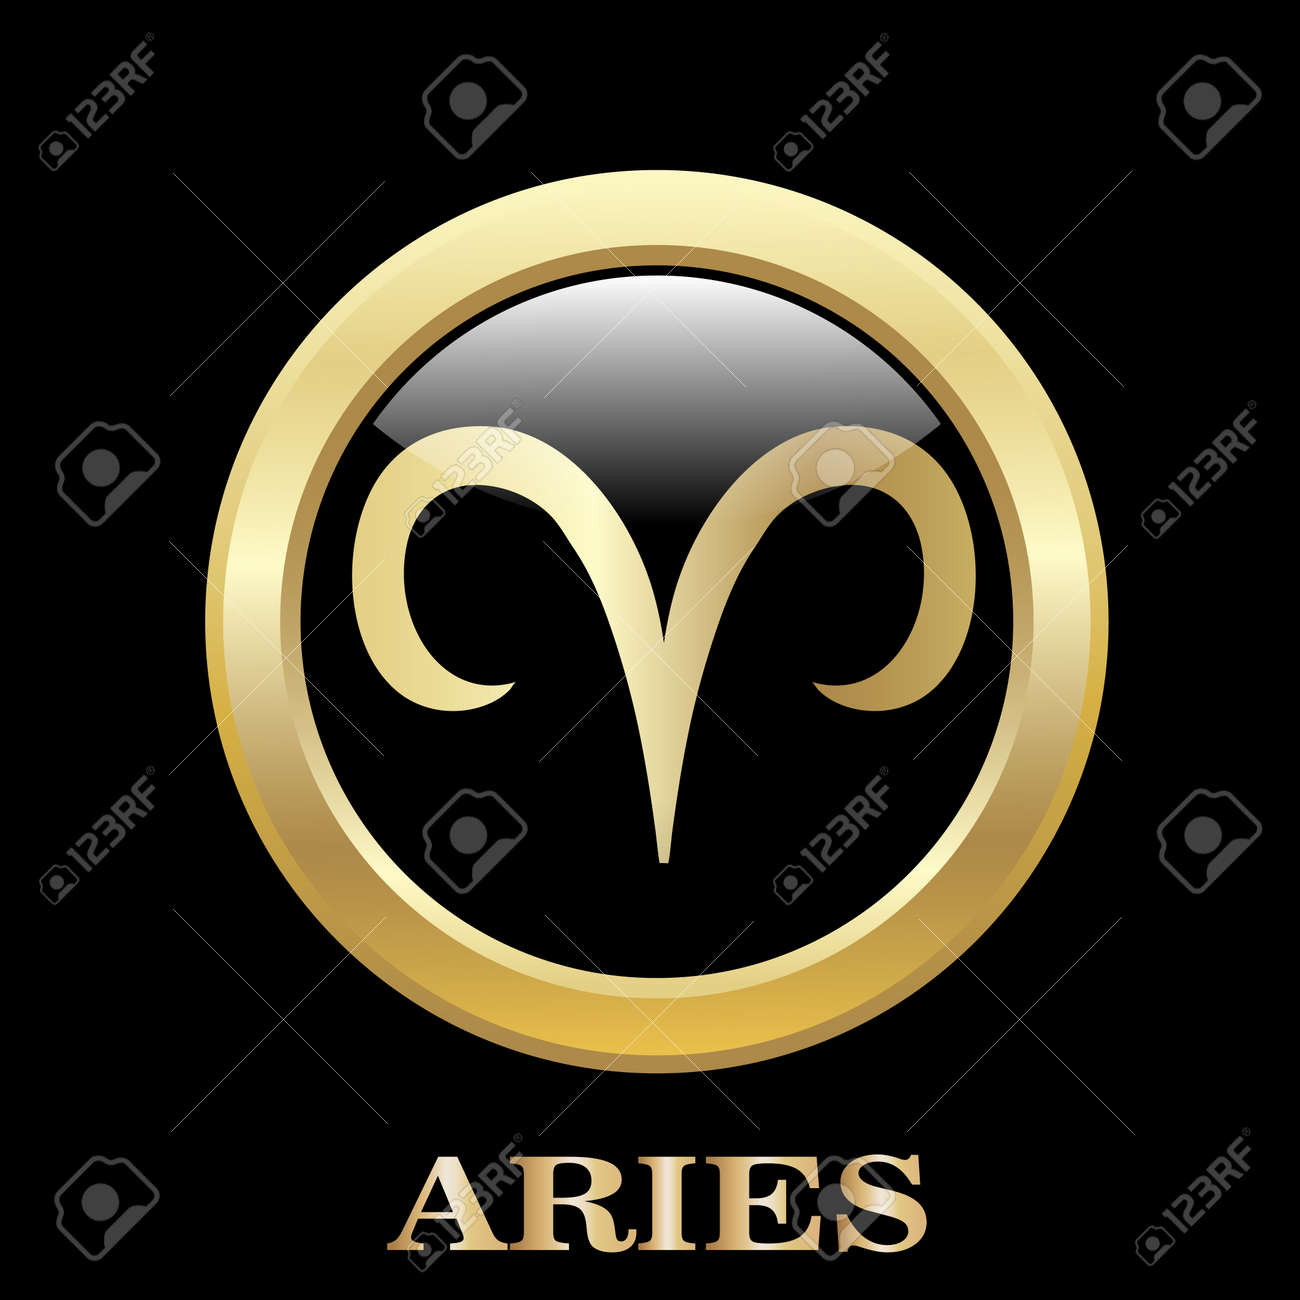 aries sign in